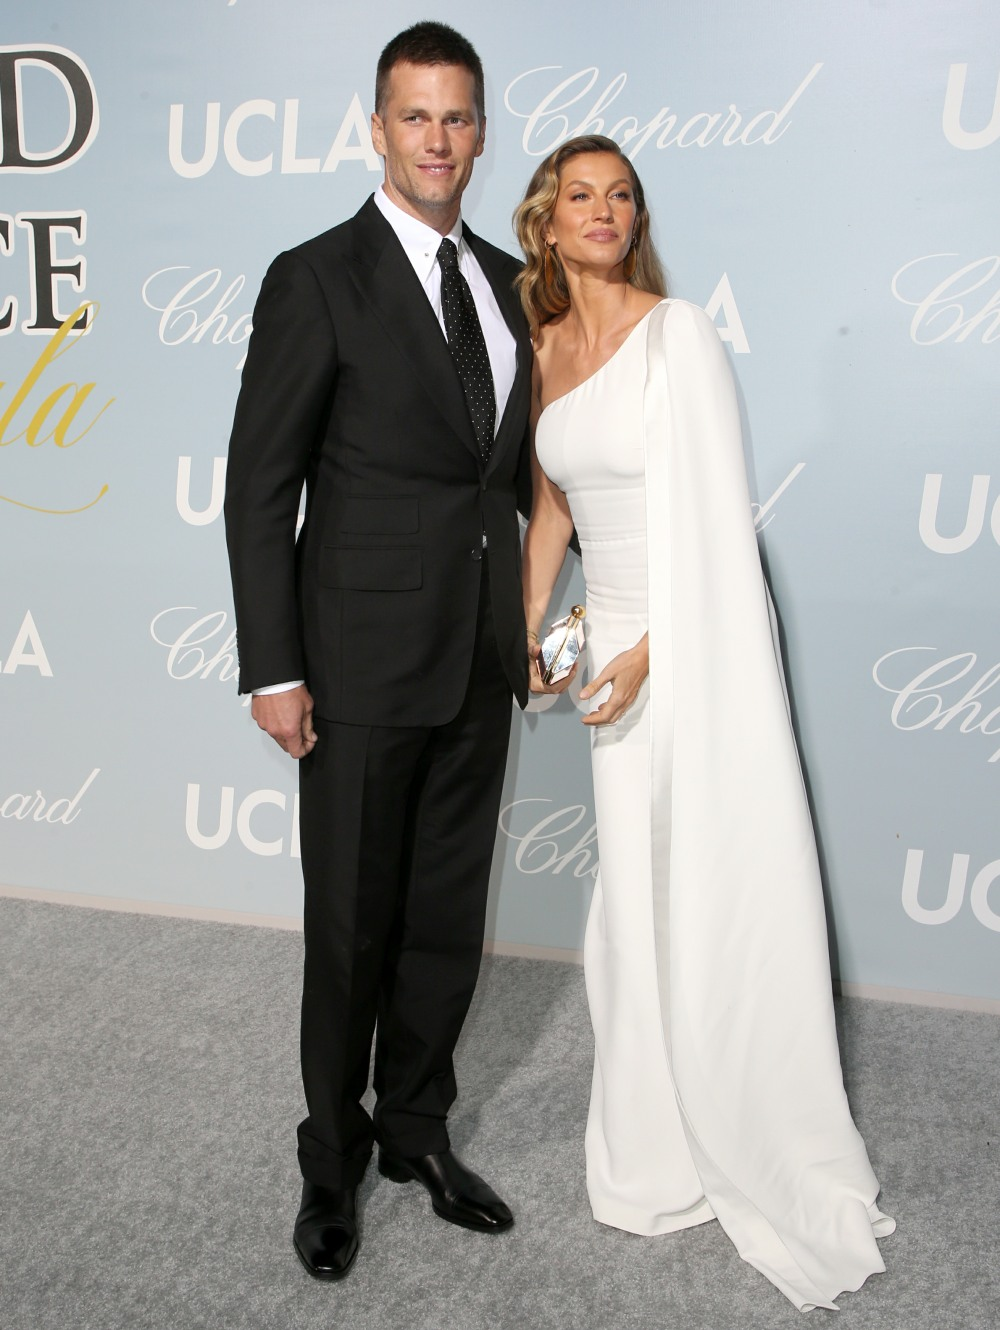 Gisele Bundchen in Stella McCartney at the Hollywood for Science gala: meh or cute?